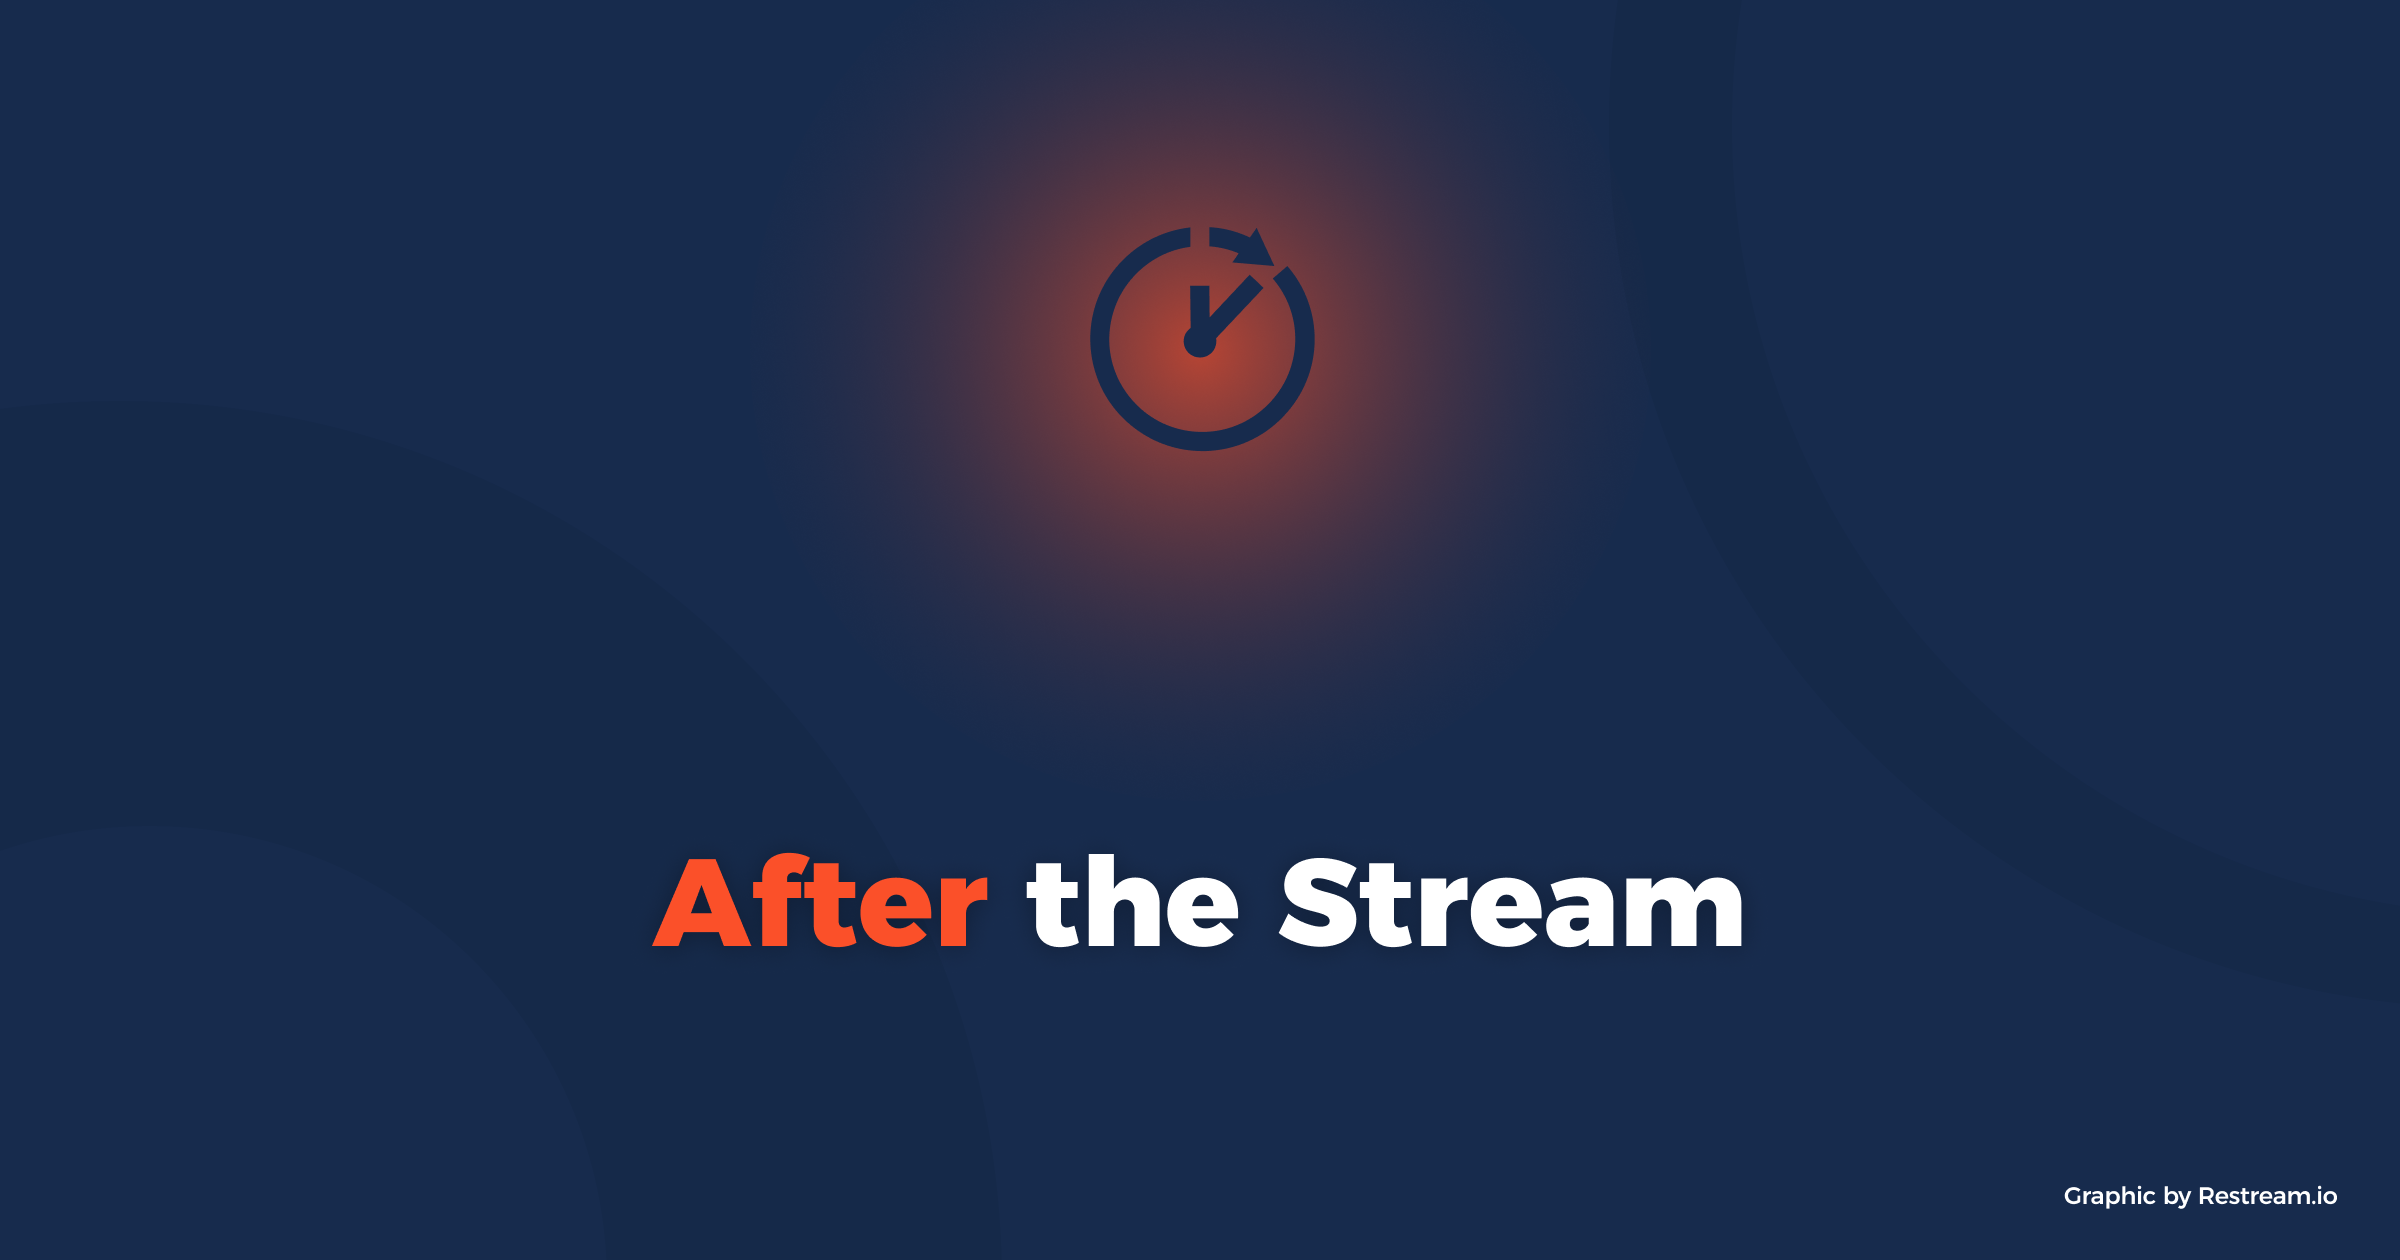 Facebook Live: After the Stream